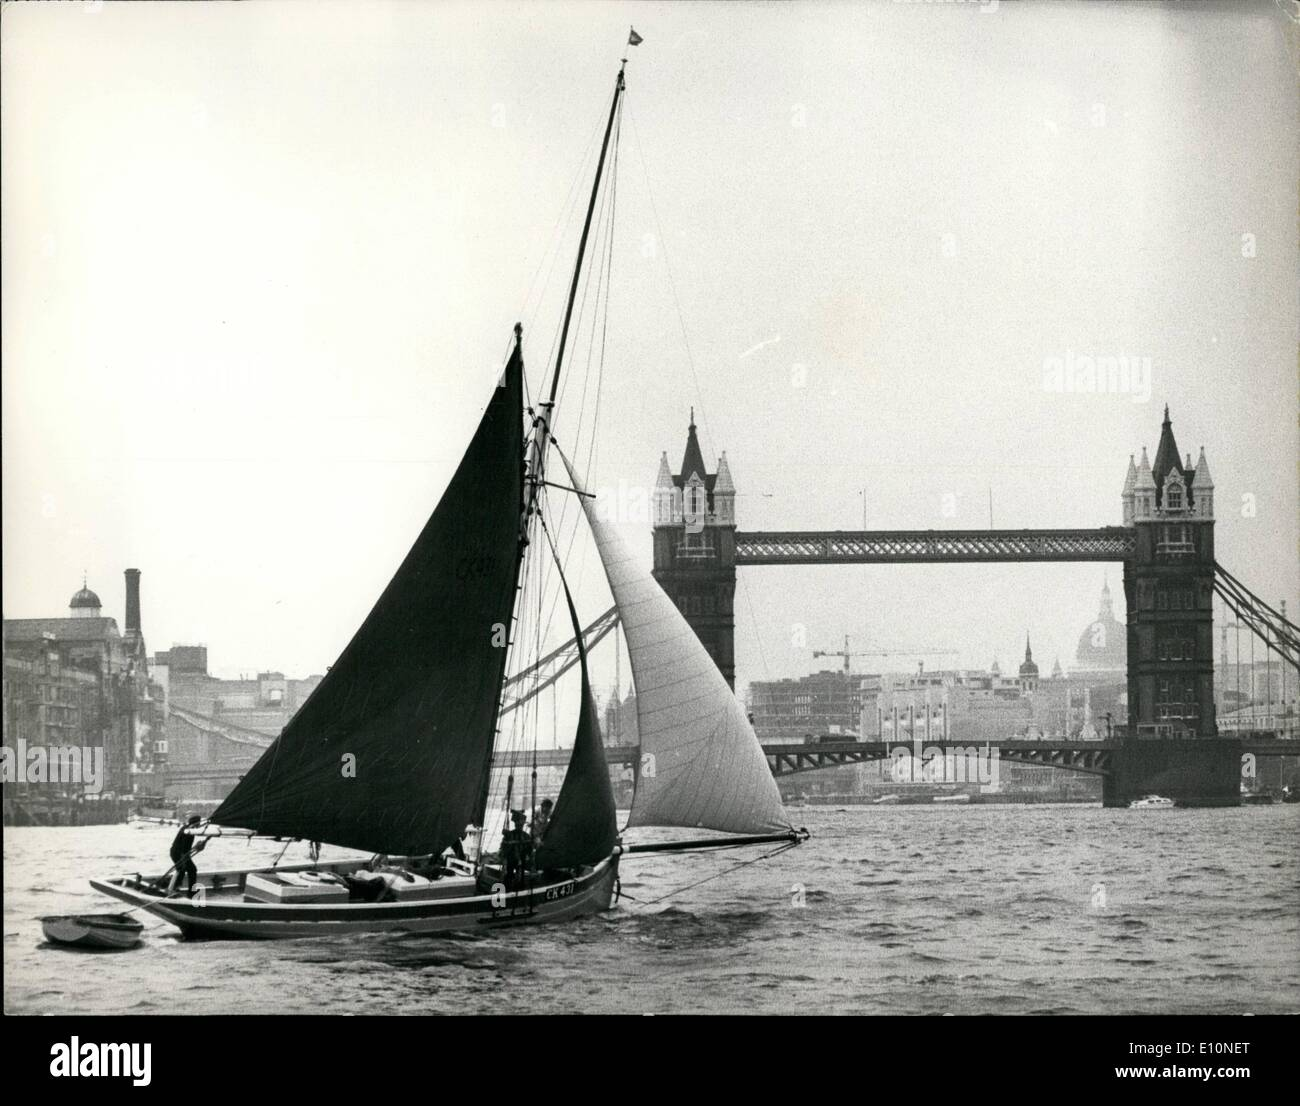 Aug. 08, 1973 - The Thames Oyster smack race.: Seventeen vintage boats, not one of them built in this century, today competed in the Thames Oyster Smack Race, starting from Gravesend and finishing at Cherry Garden Pier, about a mile below Tower Bridge. The race, which is organized by the Fishmonger's Company on behalf of the Shellfish Association, was won by the ''A.D.C.''. Photo shows the winning smack ''A.D.C.'' crossing the finishing line below Tower Bridge (background) - Stock Image